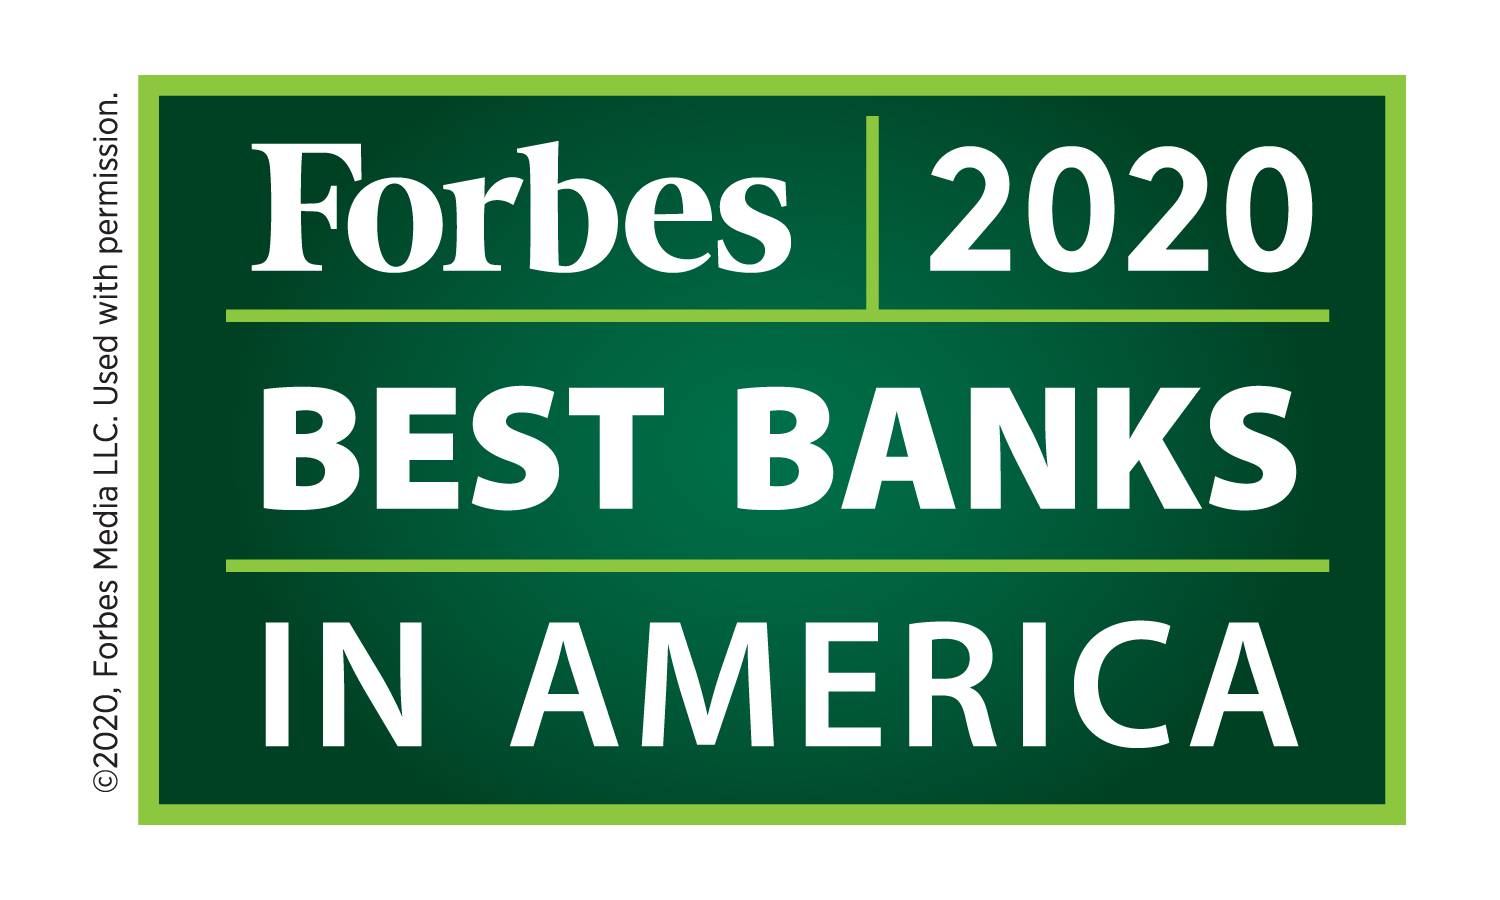 Forbes Best Bank 2020